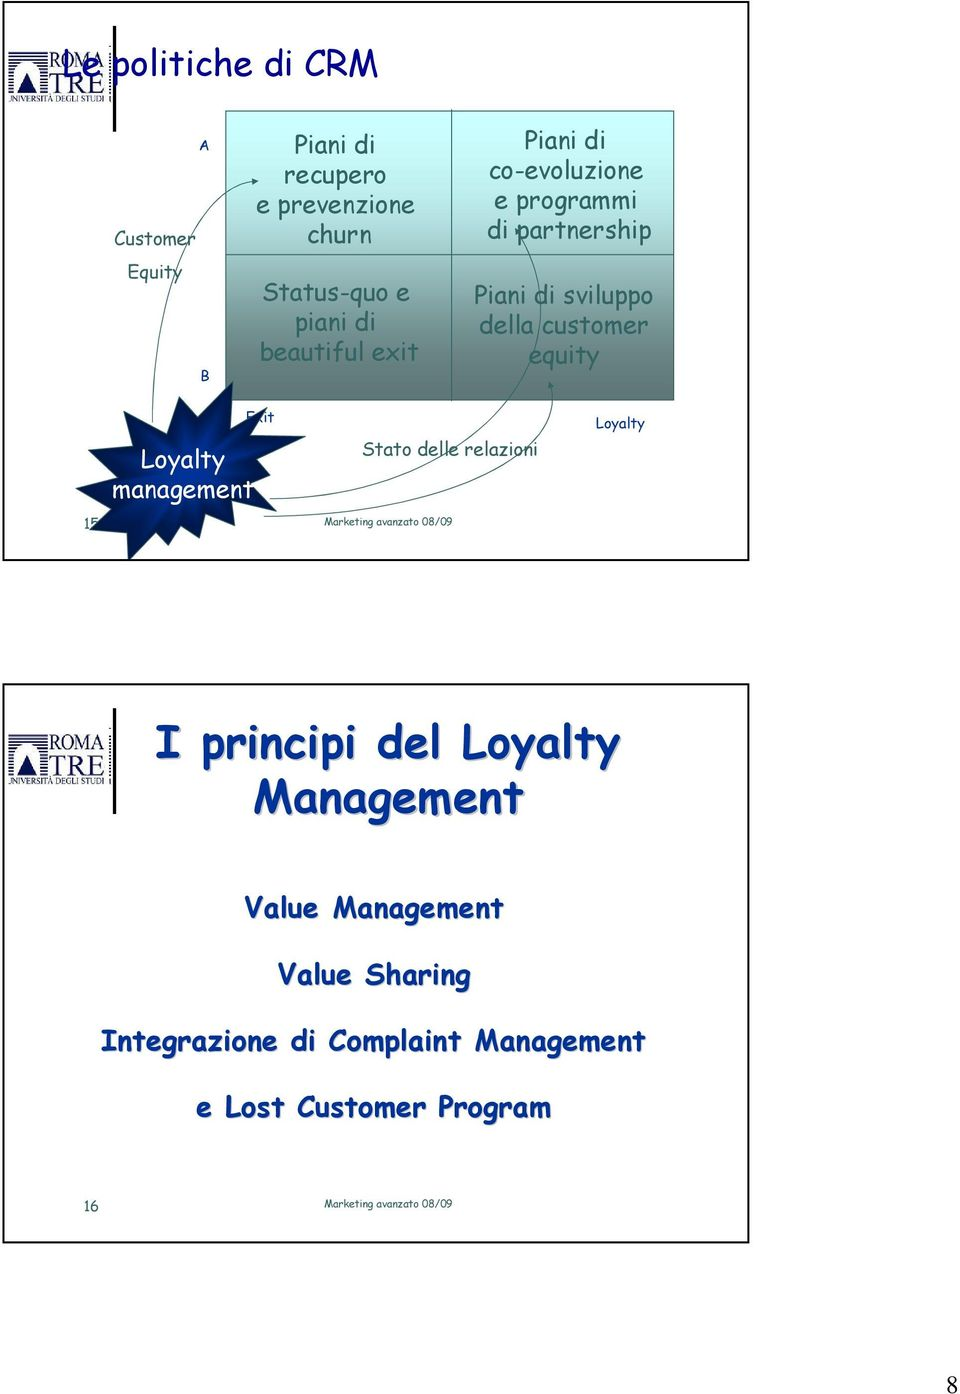 customer equity 15 Loyalty management Exit Stato delle relazioni Loyalty I principi del Loyalty